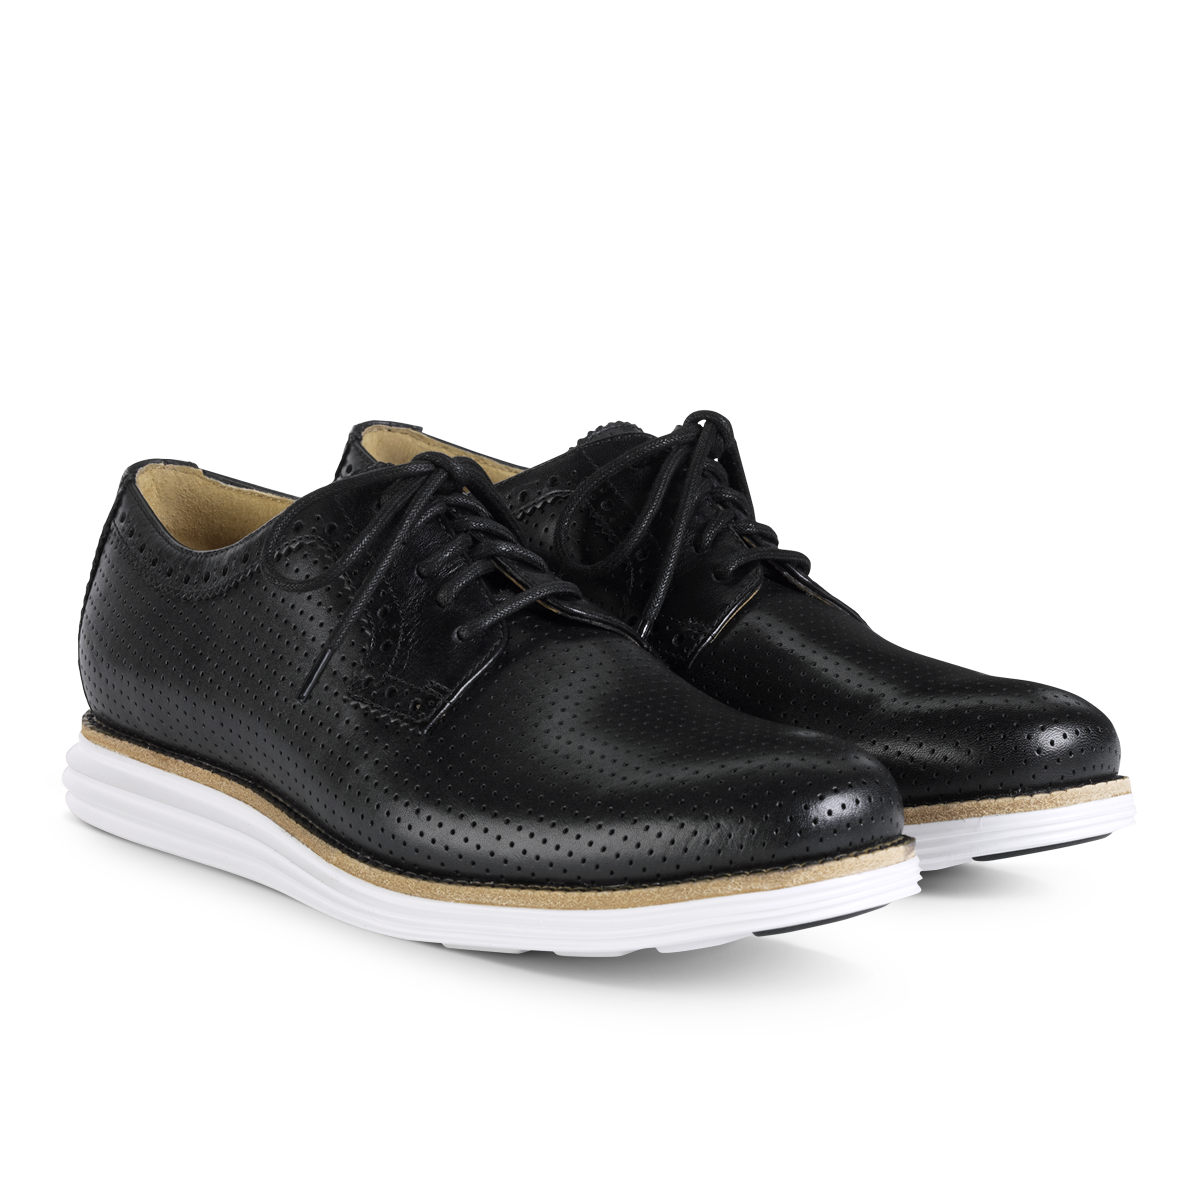 cole haan shoes polish png images with transparent christmas 703